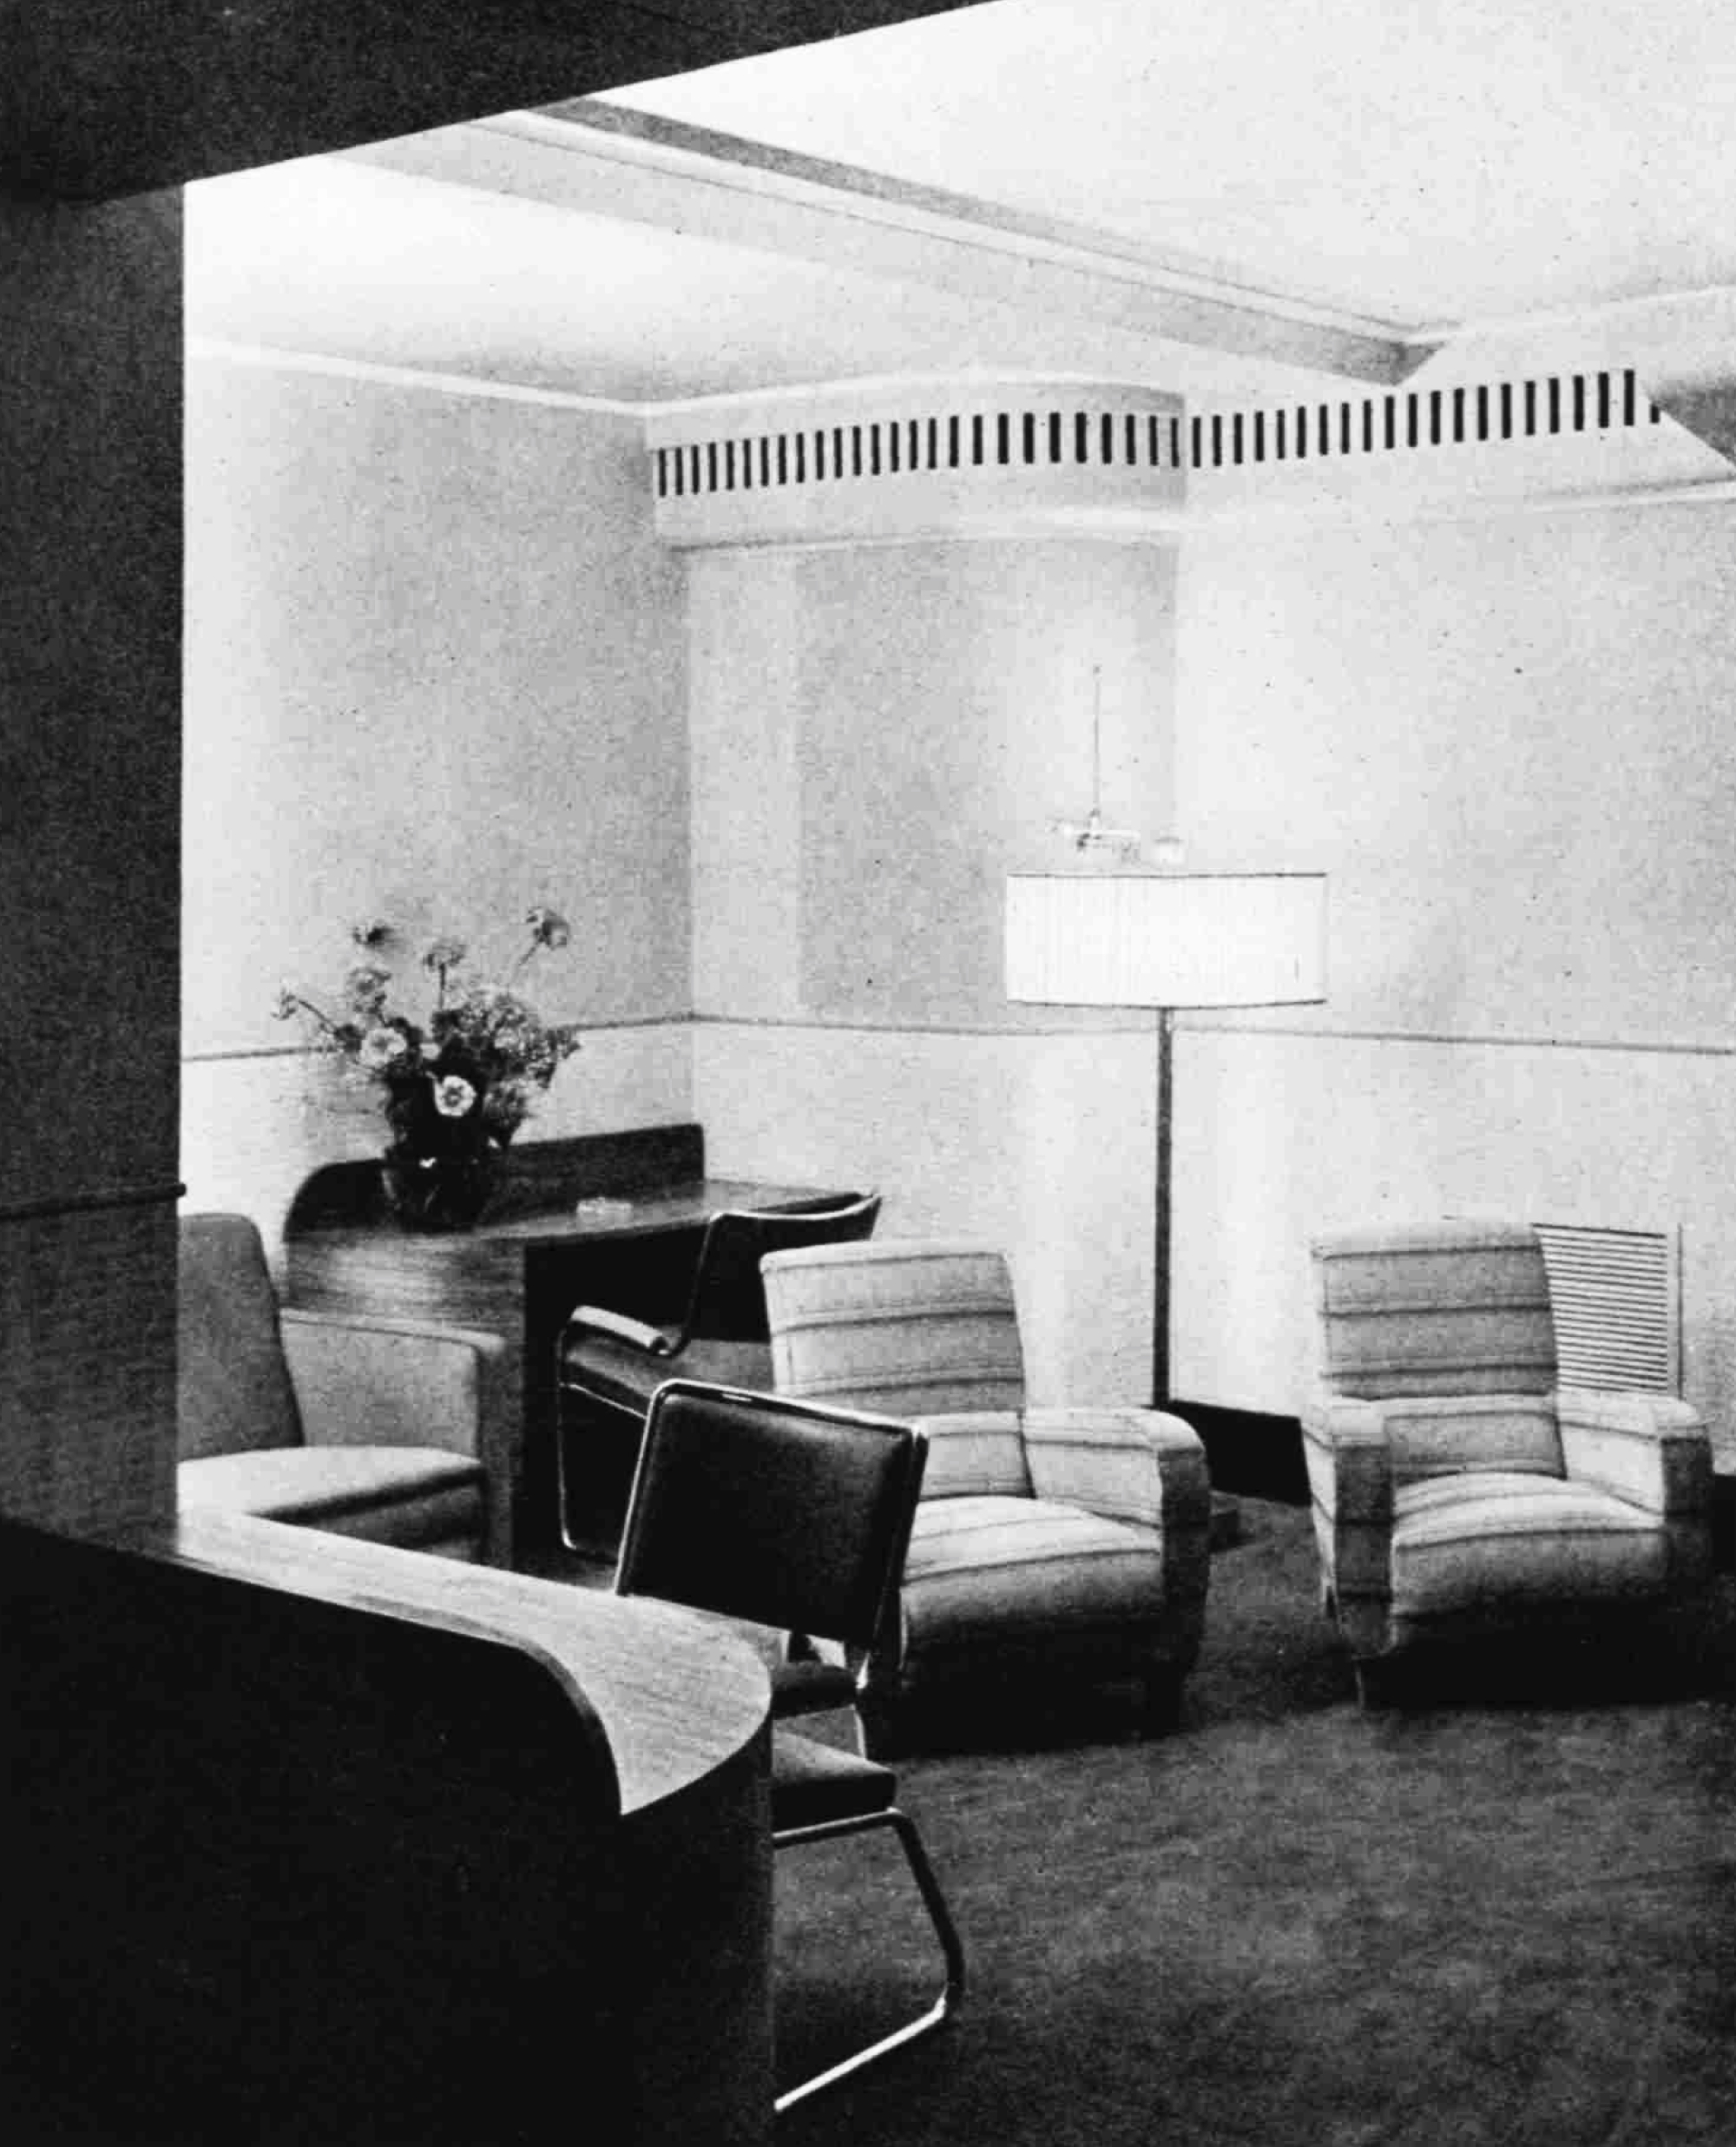 Comfortable chairs and a standard lamp